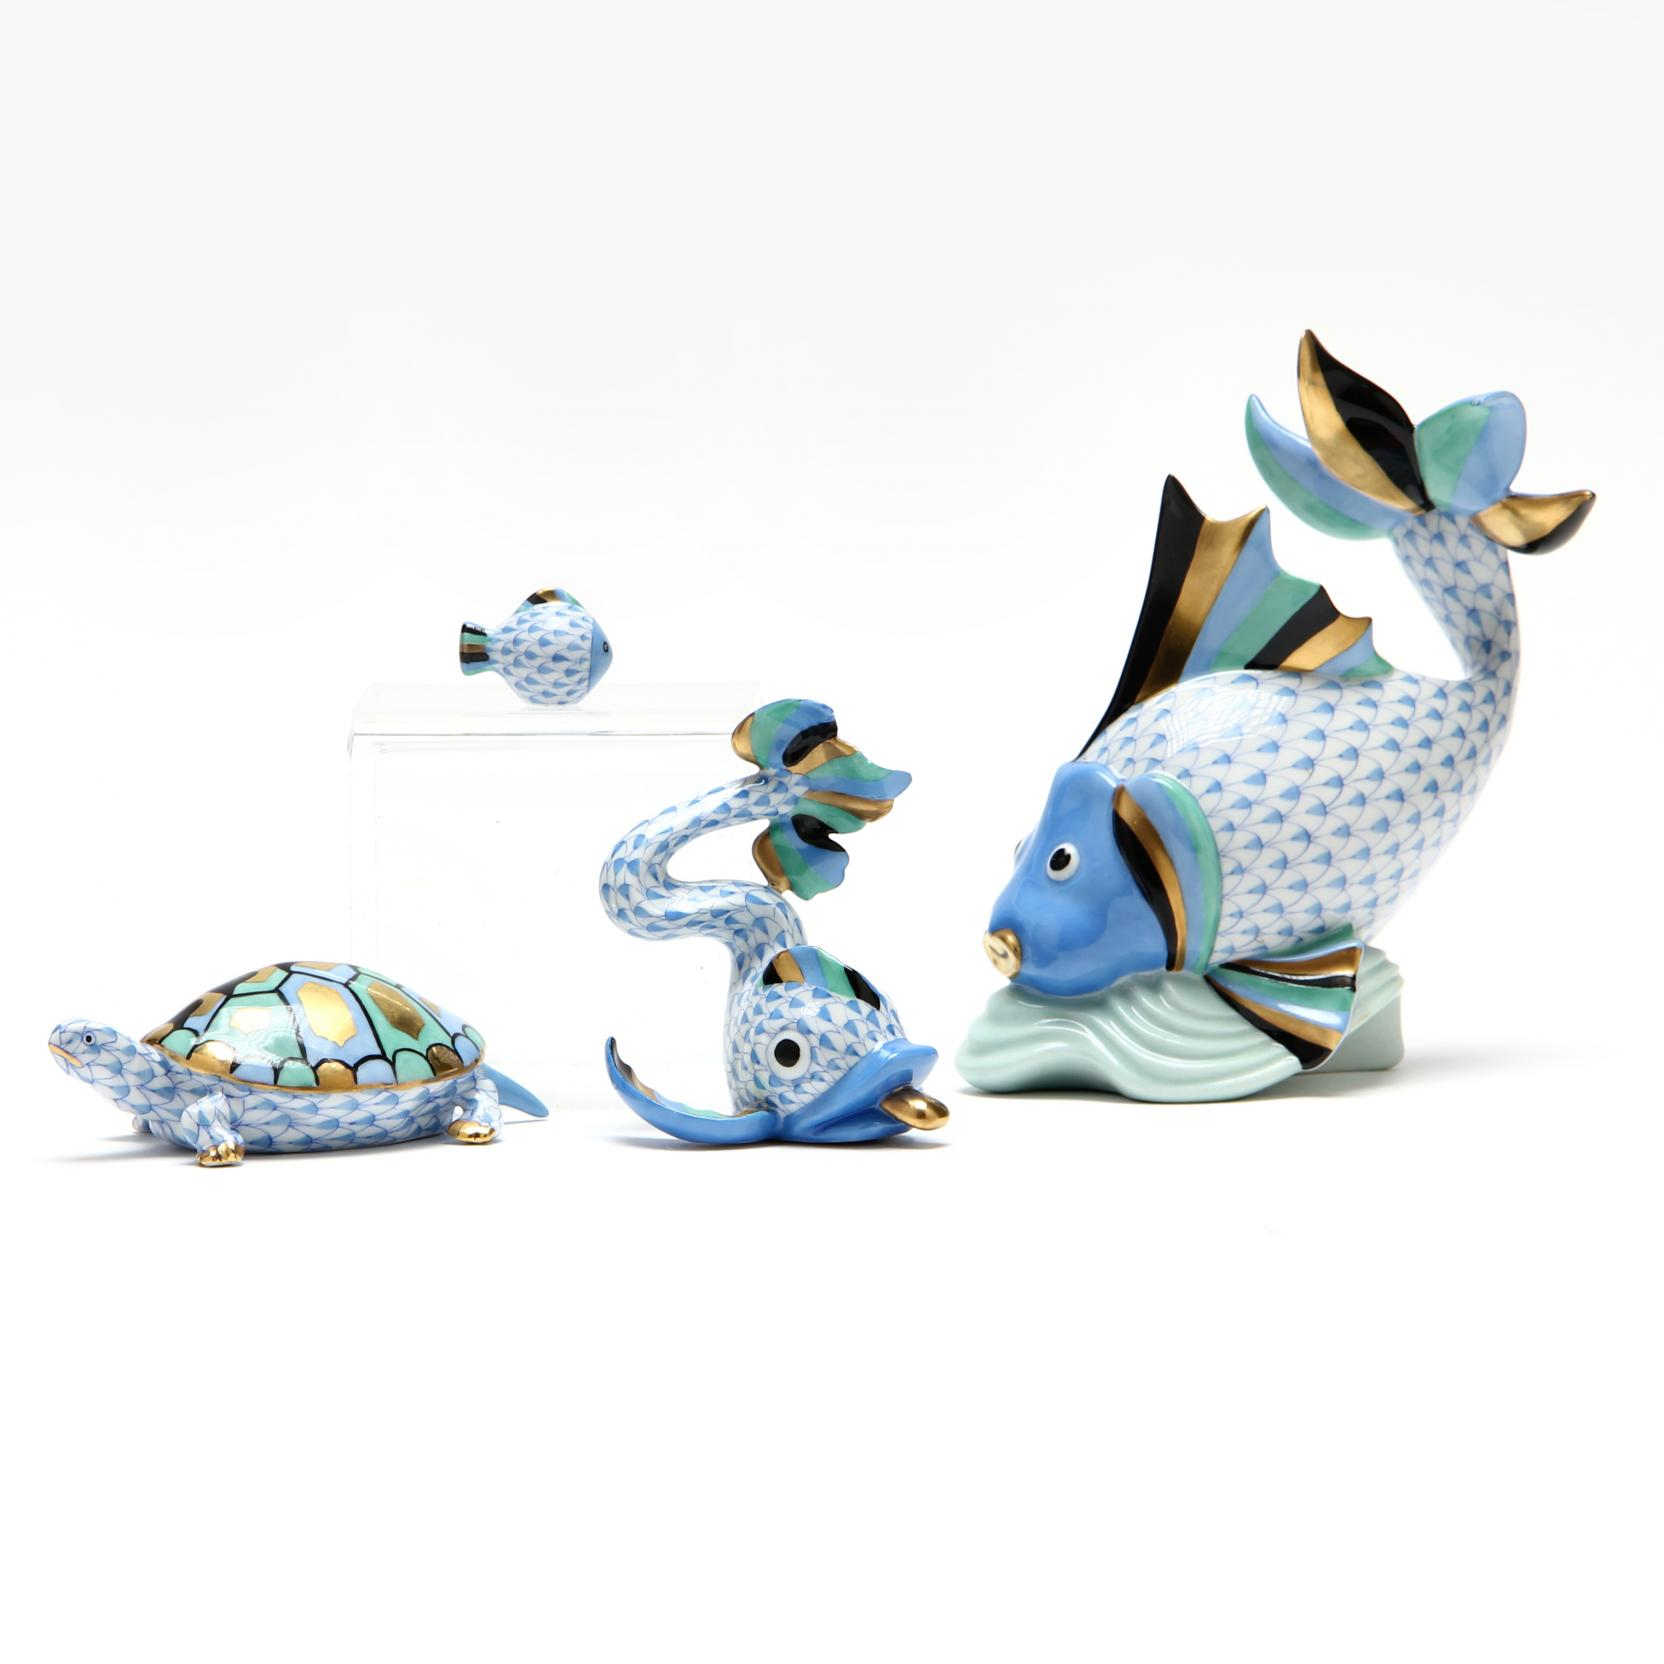 three-herend-fish-figurines-and-a-tortoise